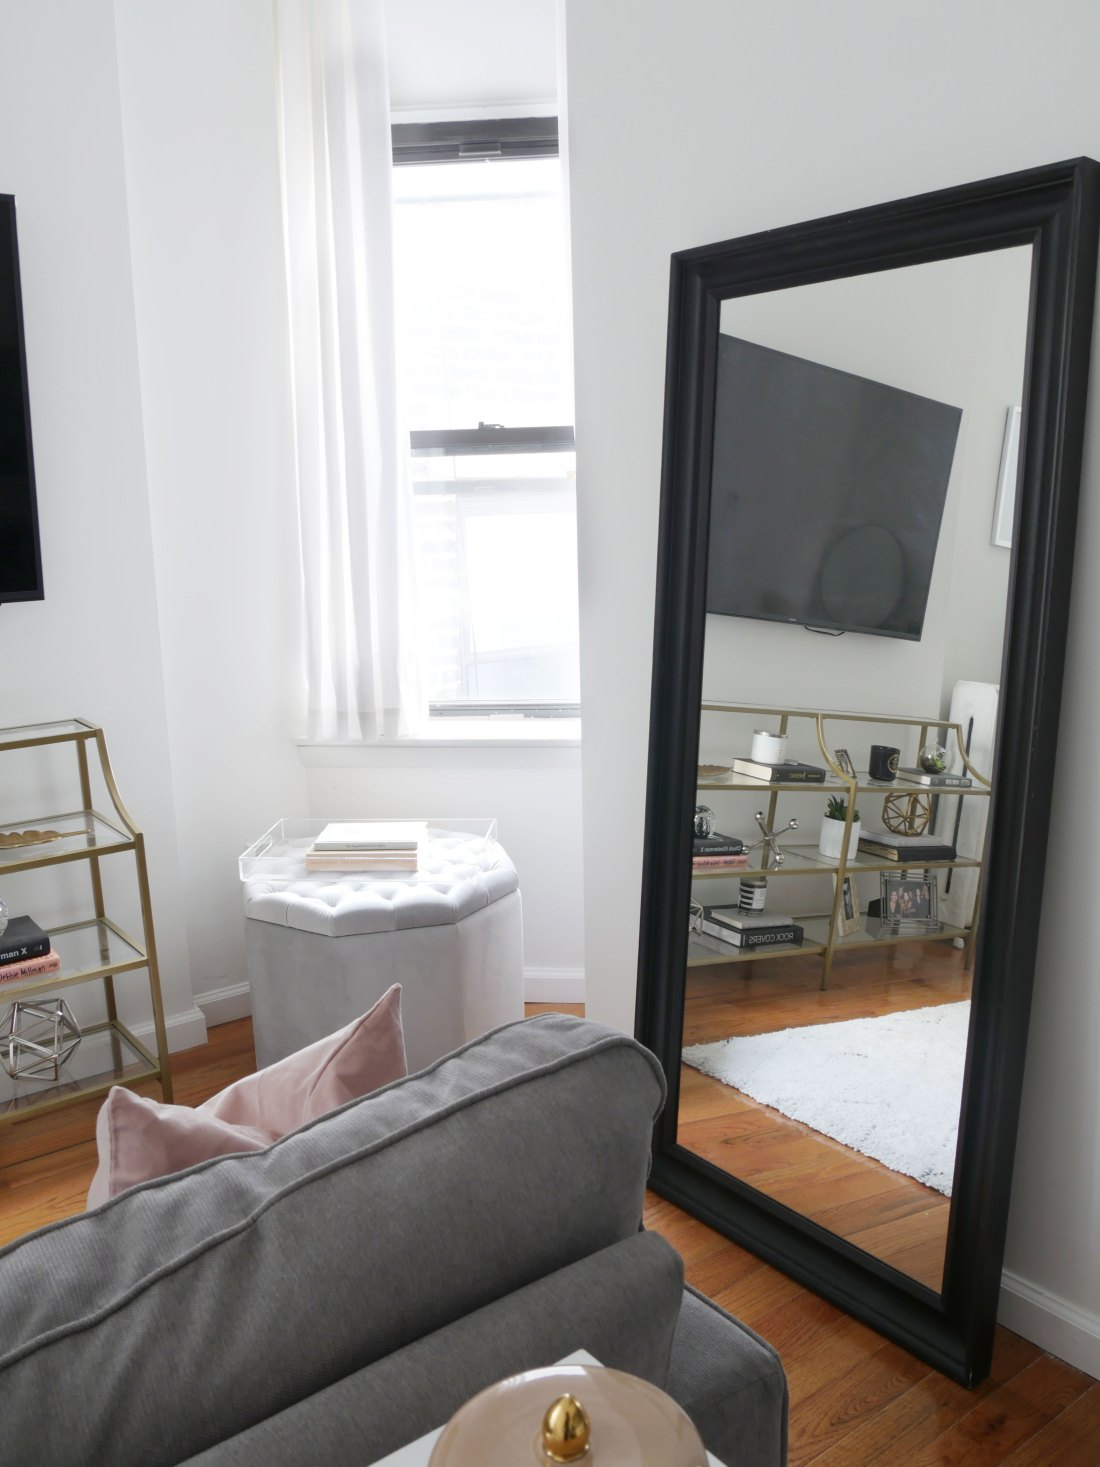 This NYC apartment is the definition of chic-meets-glam. It was a breeze & budget-friendly decorating this small, rental apartment! #rentalhomedecorating #rentaldecorating #rentalapartmentdecorating #smalllivingroomideas #smallapartmentdecorating #smallapartmentideas #walldecor #rentalhomedecoratingdiy